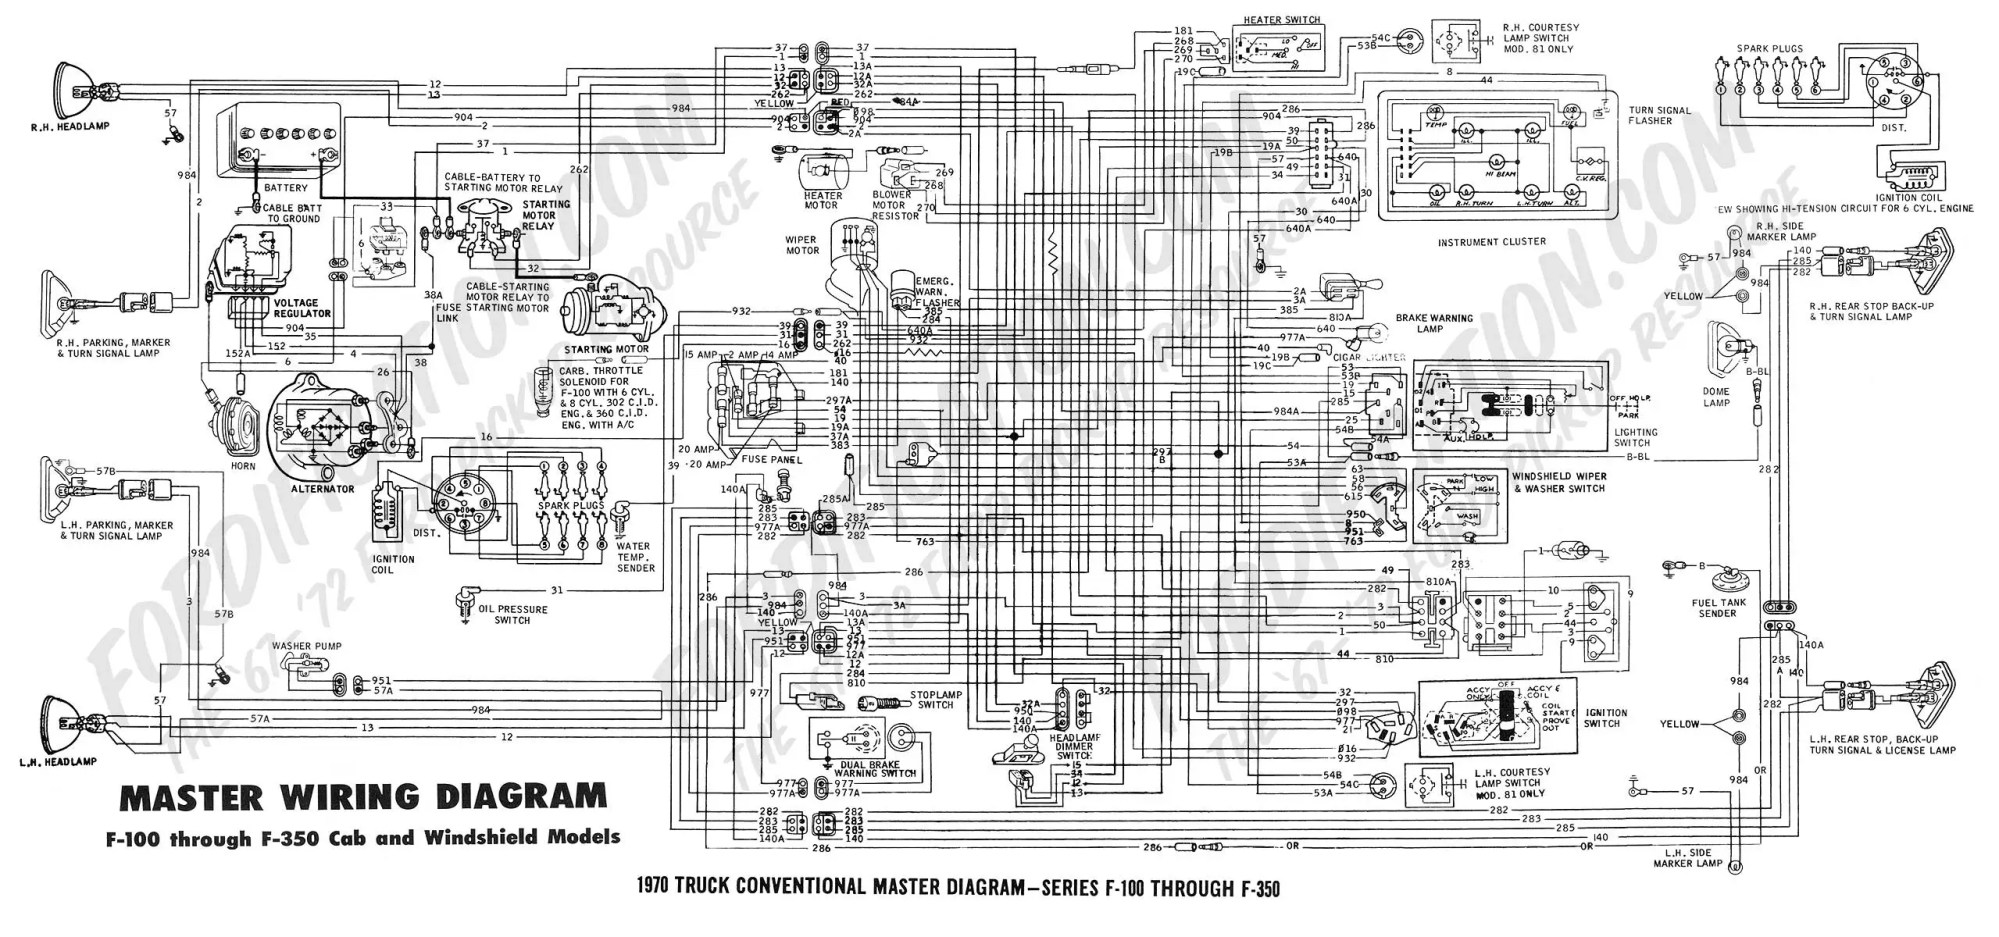 hight resolution of 1970 f250 wiring diagram wiring diagram expert 1971 ford truck wiring diagam 1972 ford truck wiring